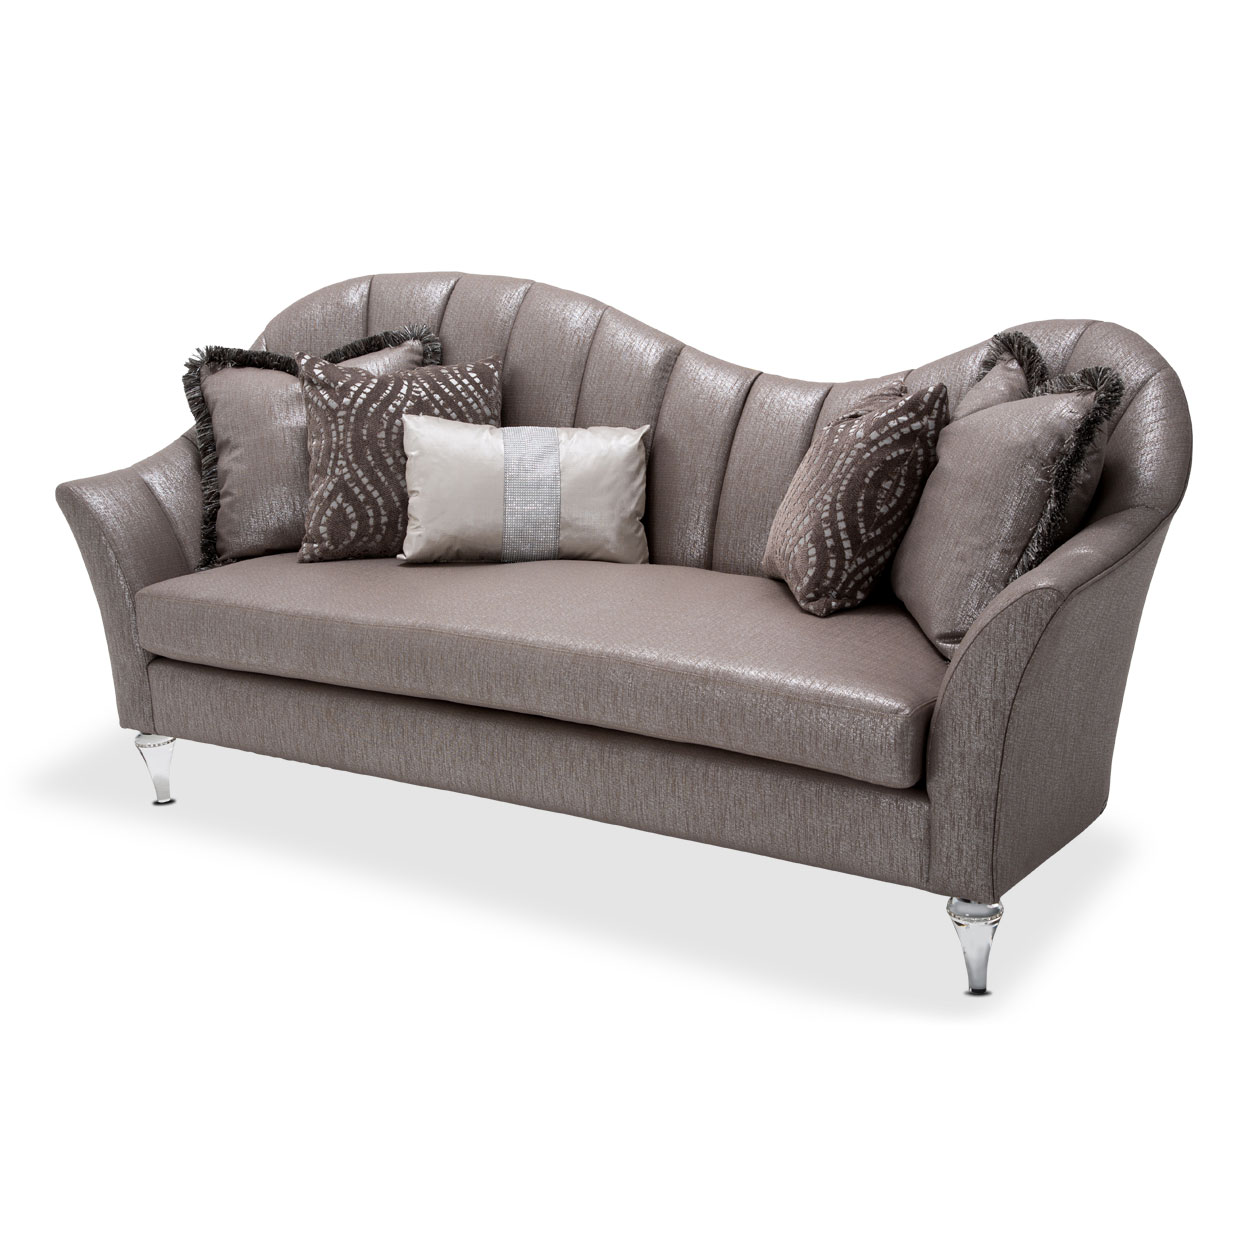 Amini Maritza Collection Contemporary Sofa With Acrylic Legs